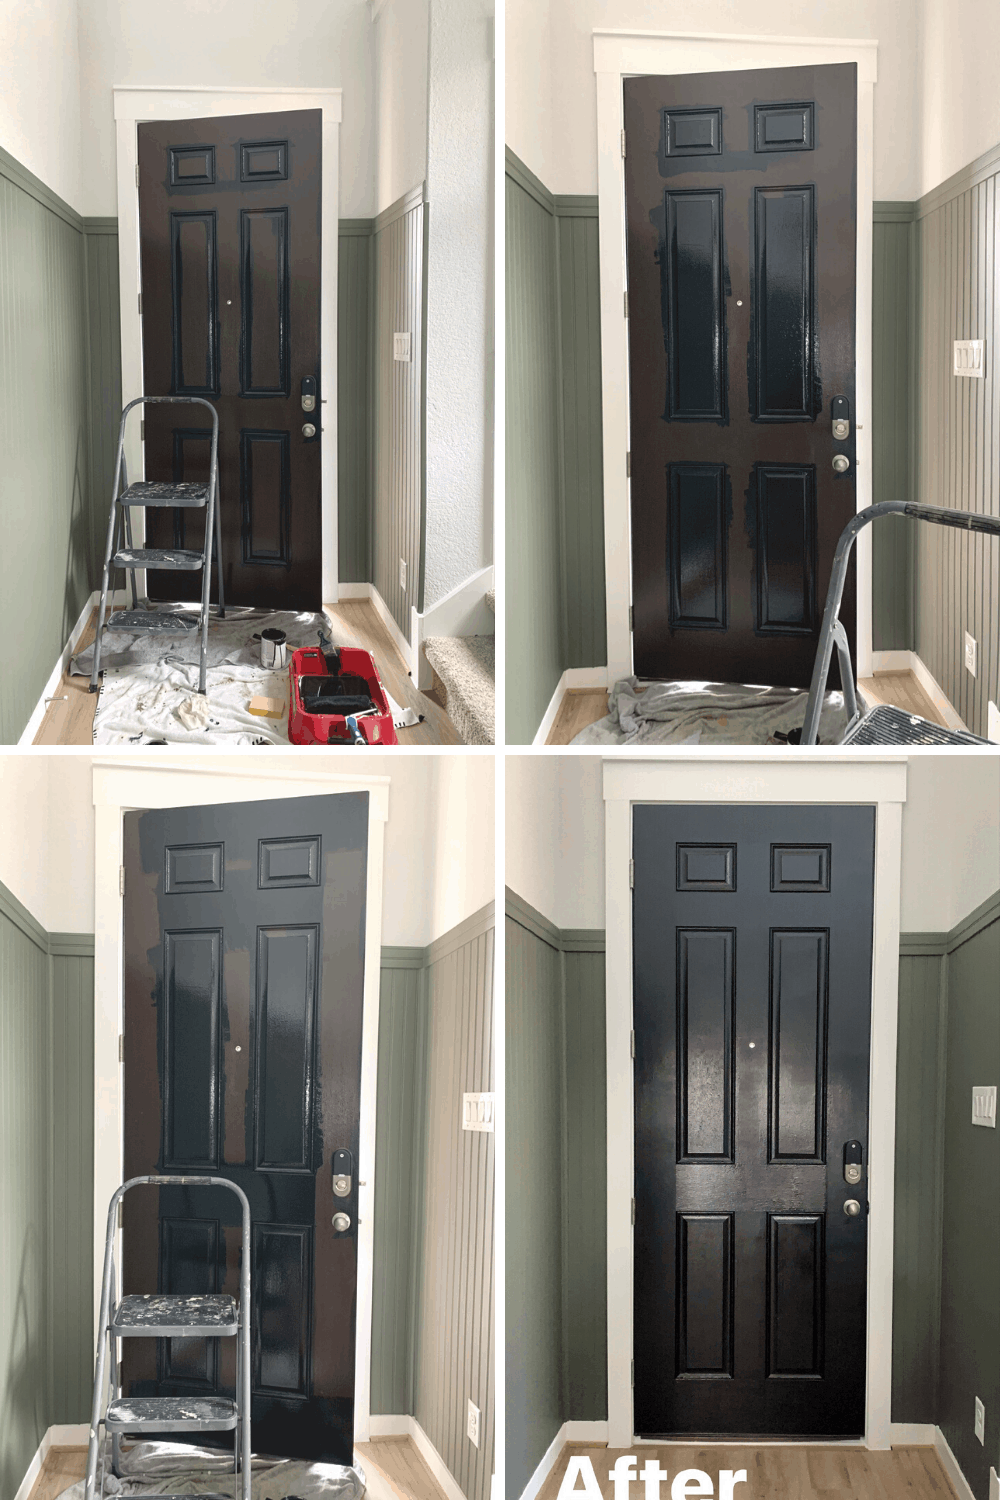 Grid of photos showing the order to paint your front door in